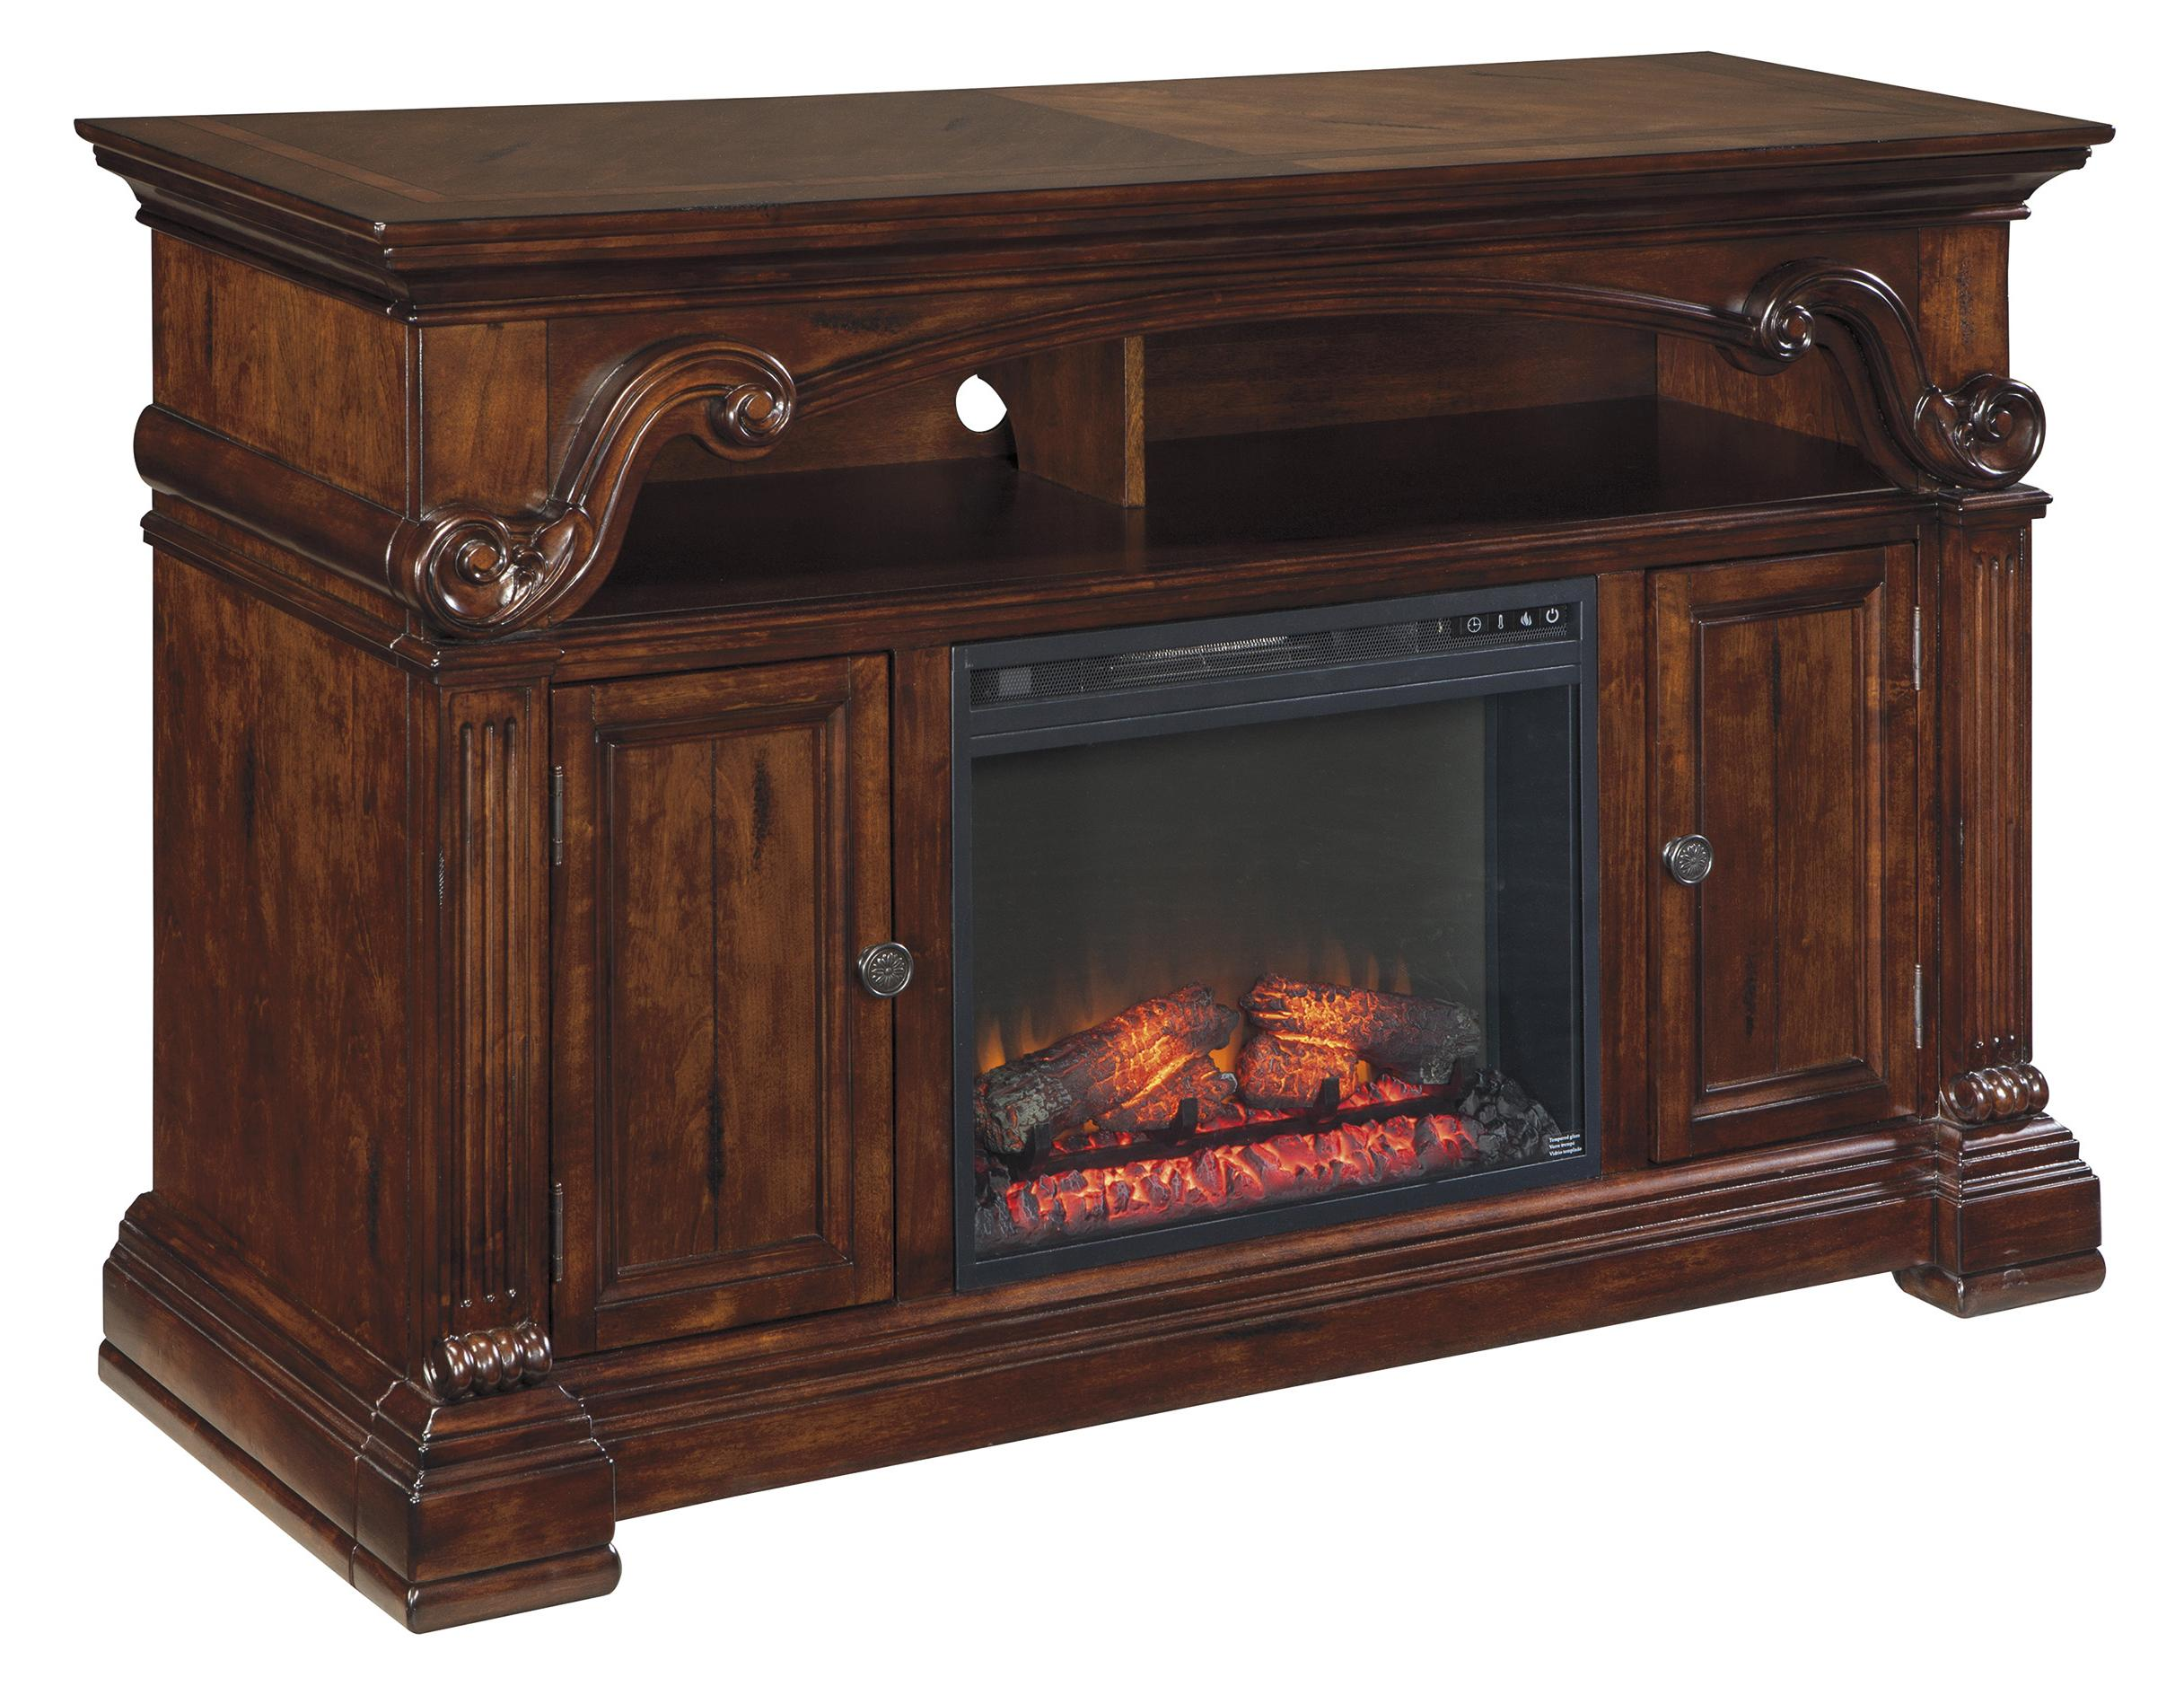 Signature Design by Ashley Scroll Large TV Stand with Fireplace Insert - Item Number: W669-68+W100-01